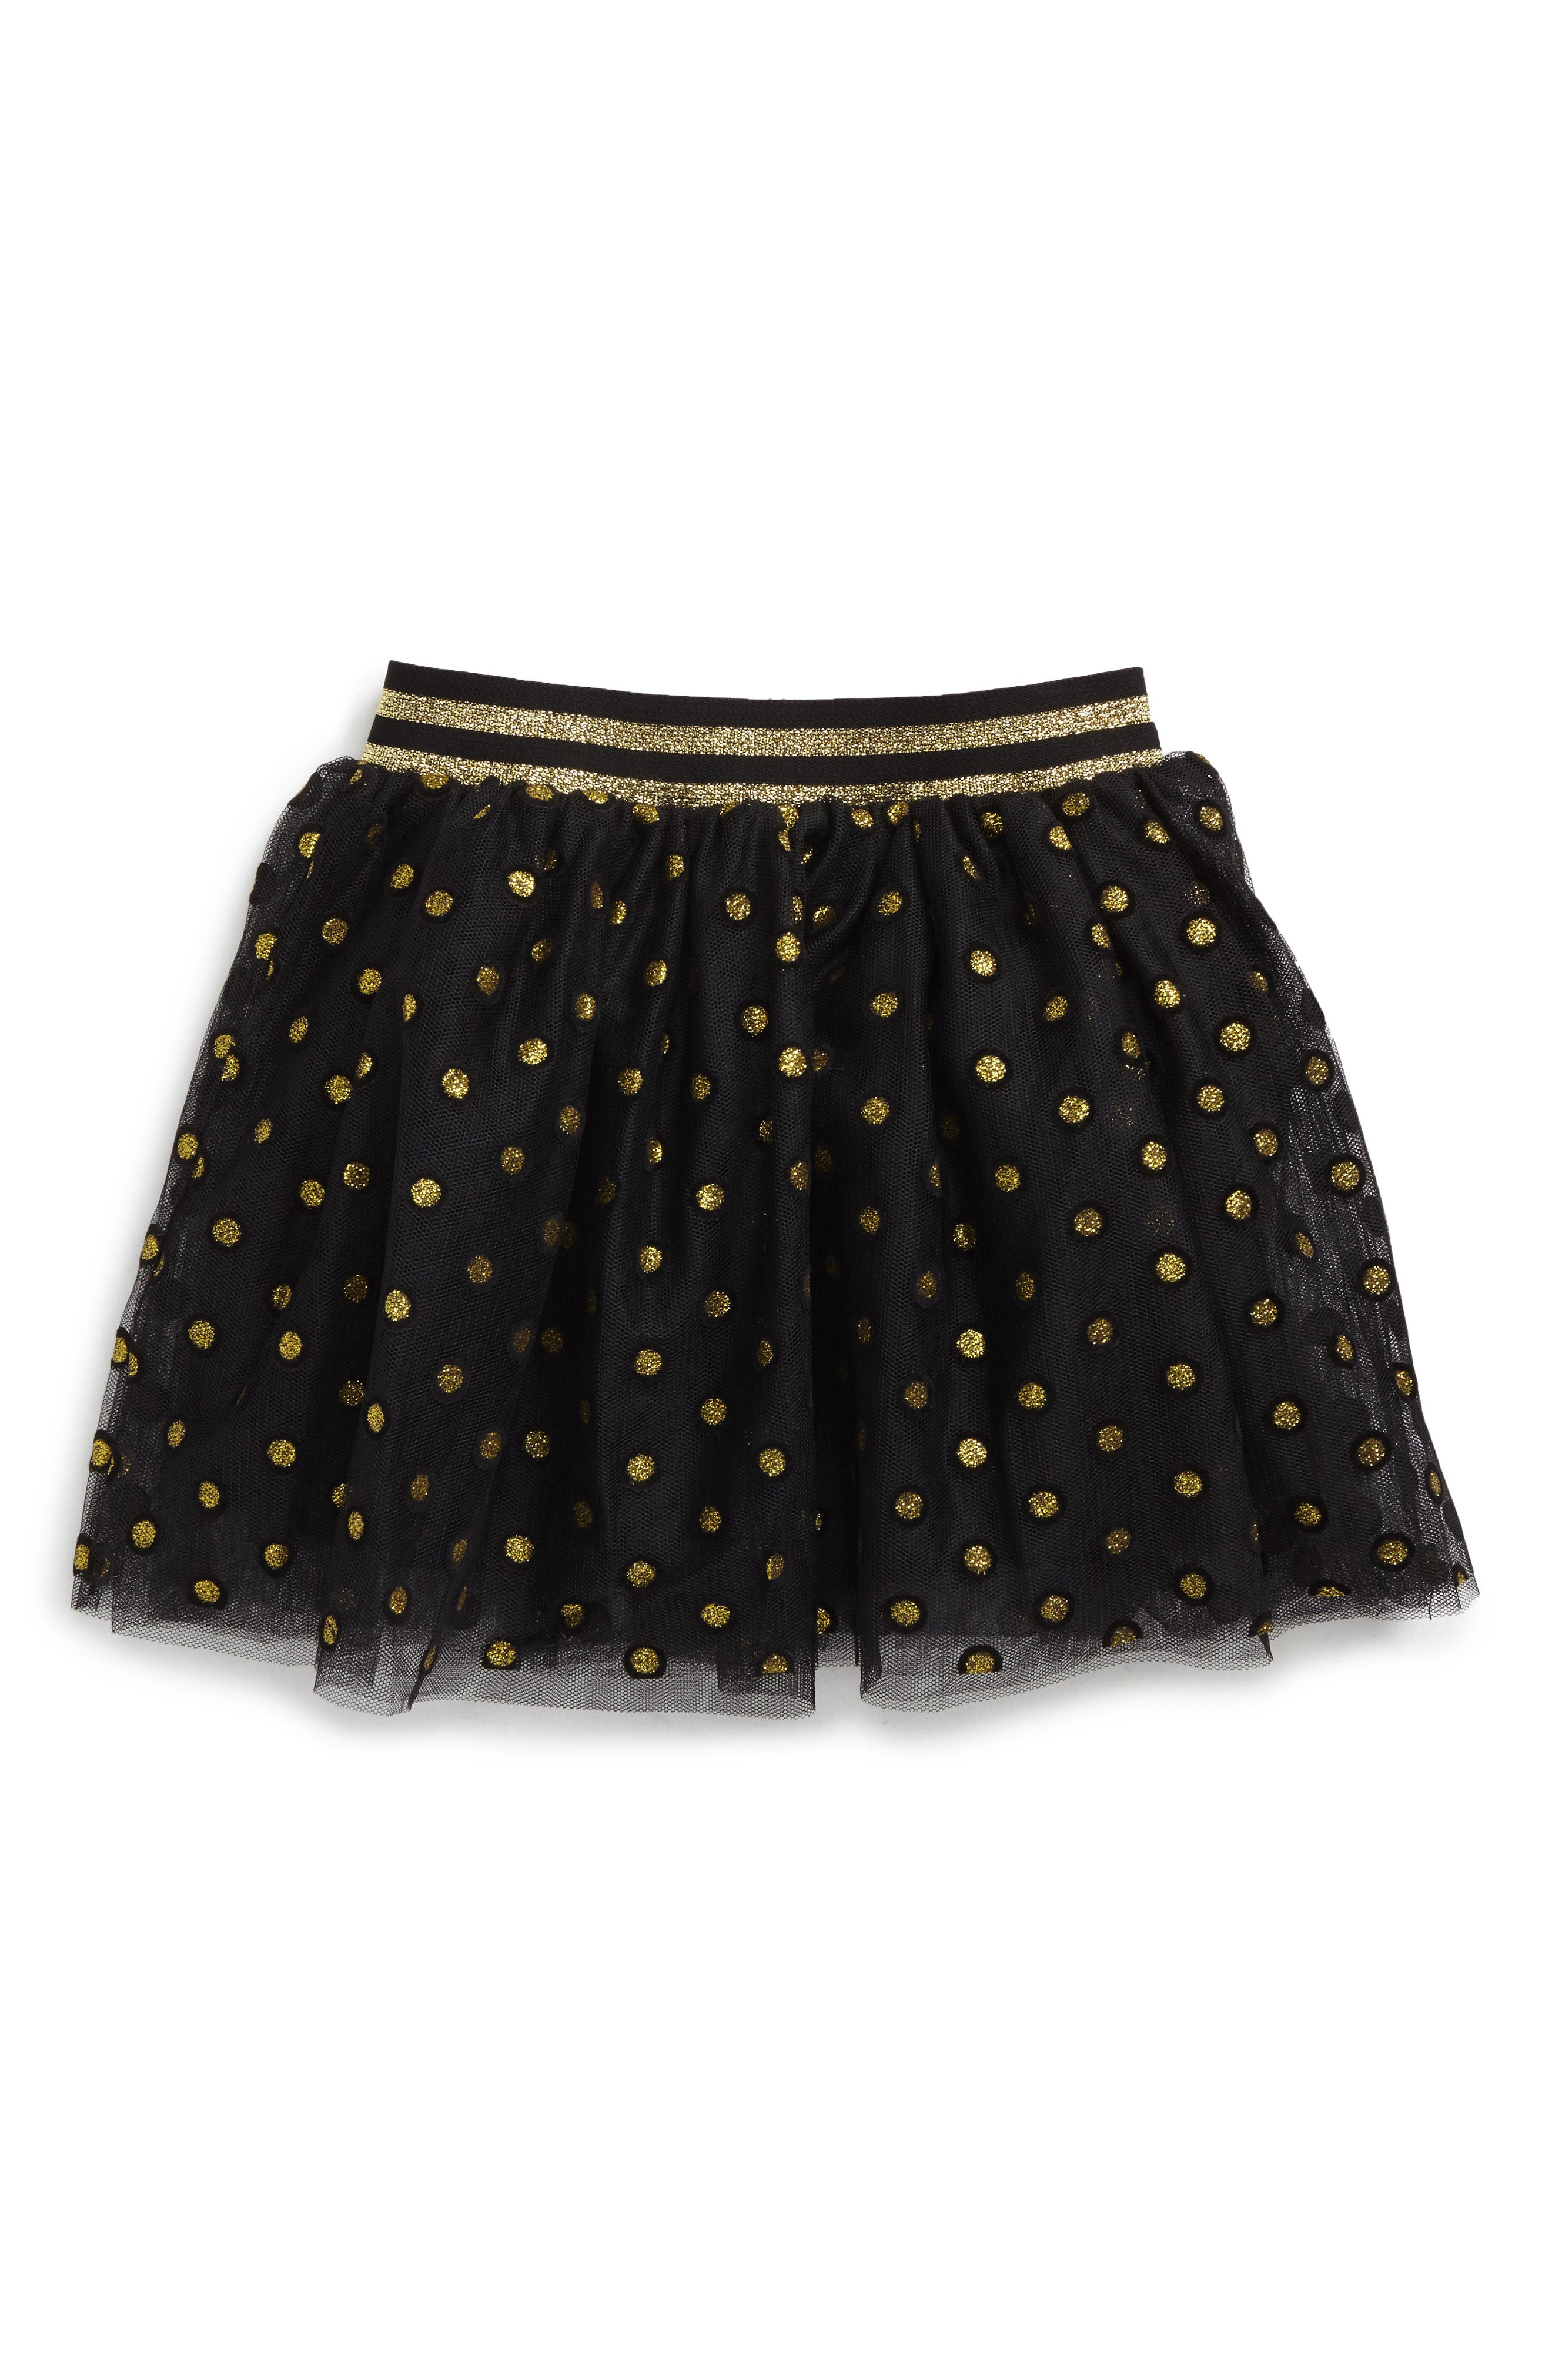 Alternate Image 1 Selected - Truly Me Sparkle Dot Tutu Skirt (Baby Girls)